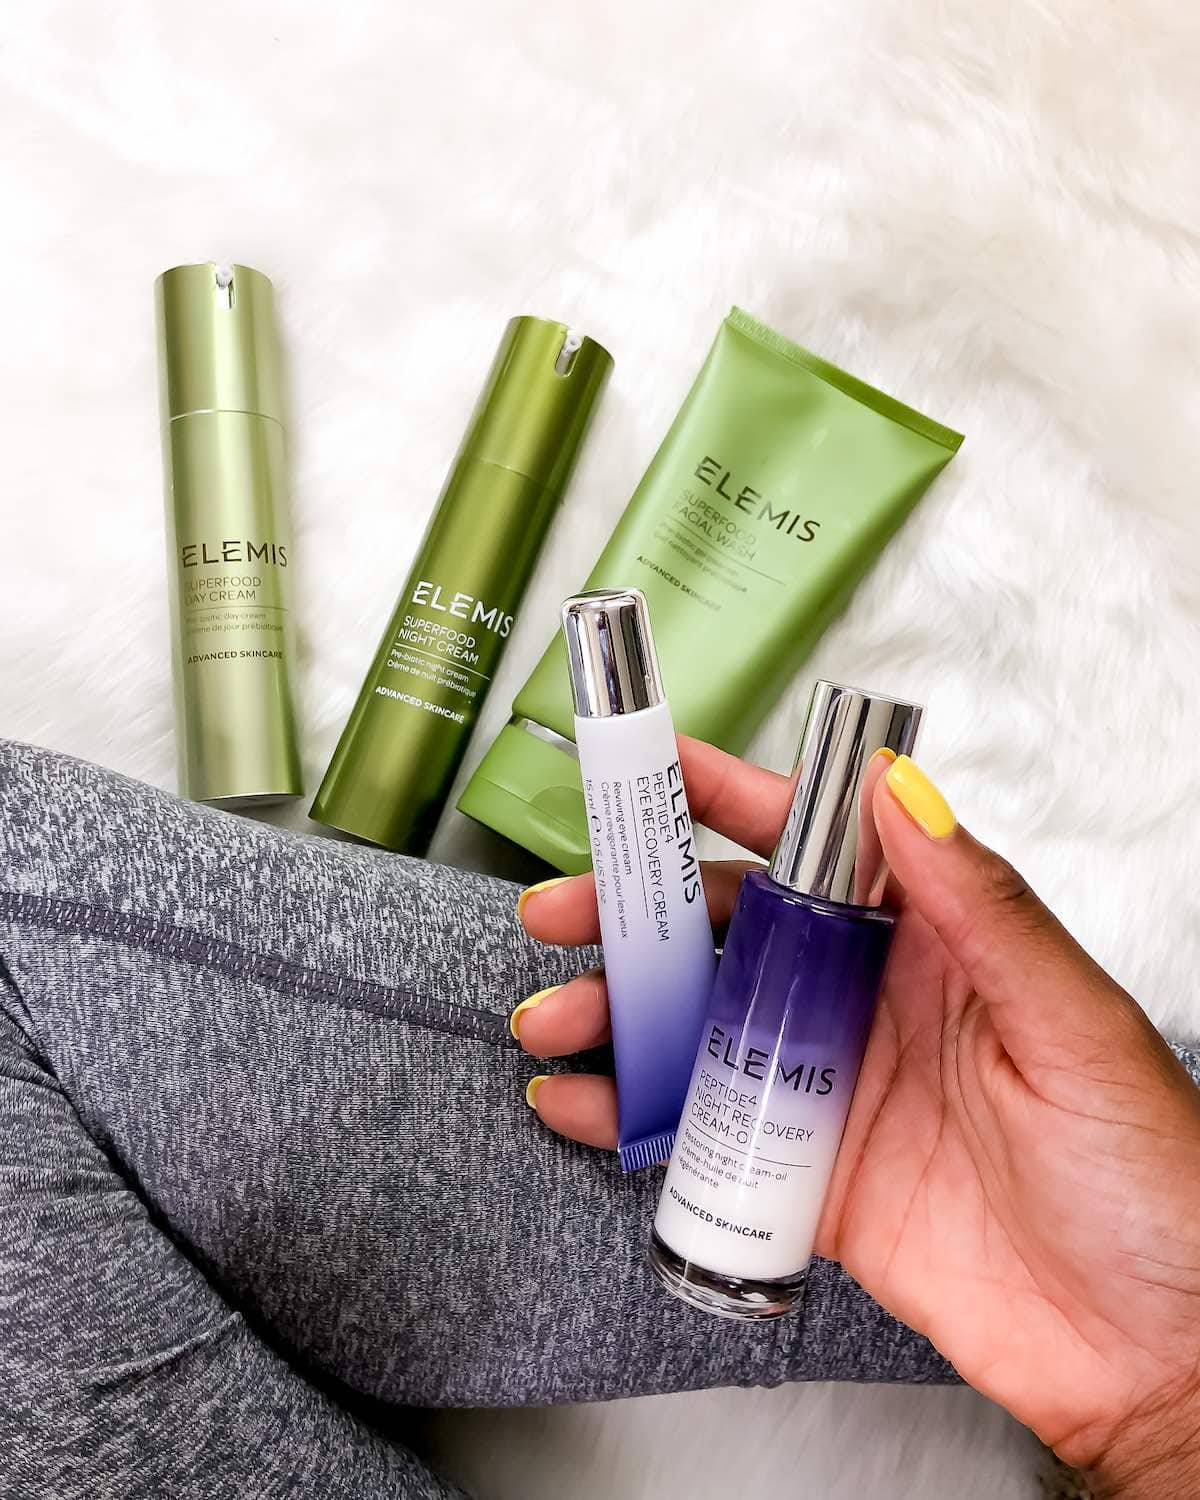 Elemis Reviews: Top 10 Best Elemis Products for Women [My Experience]